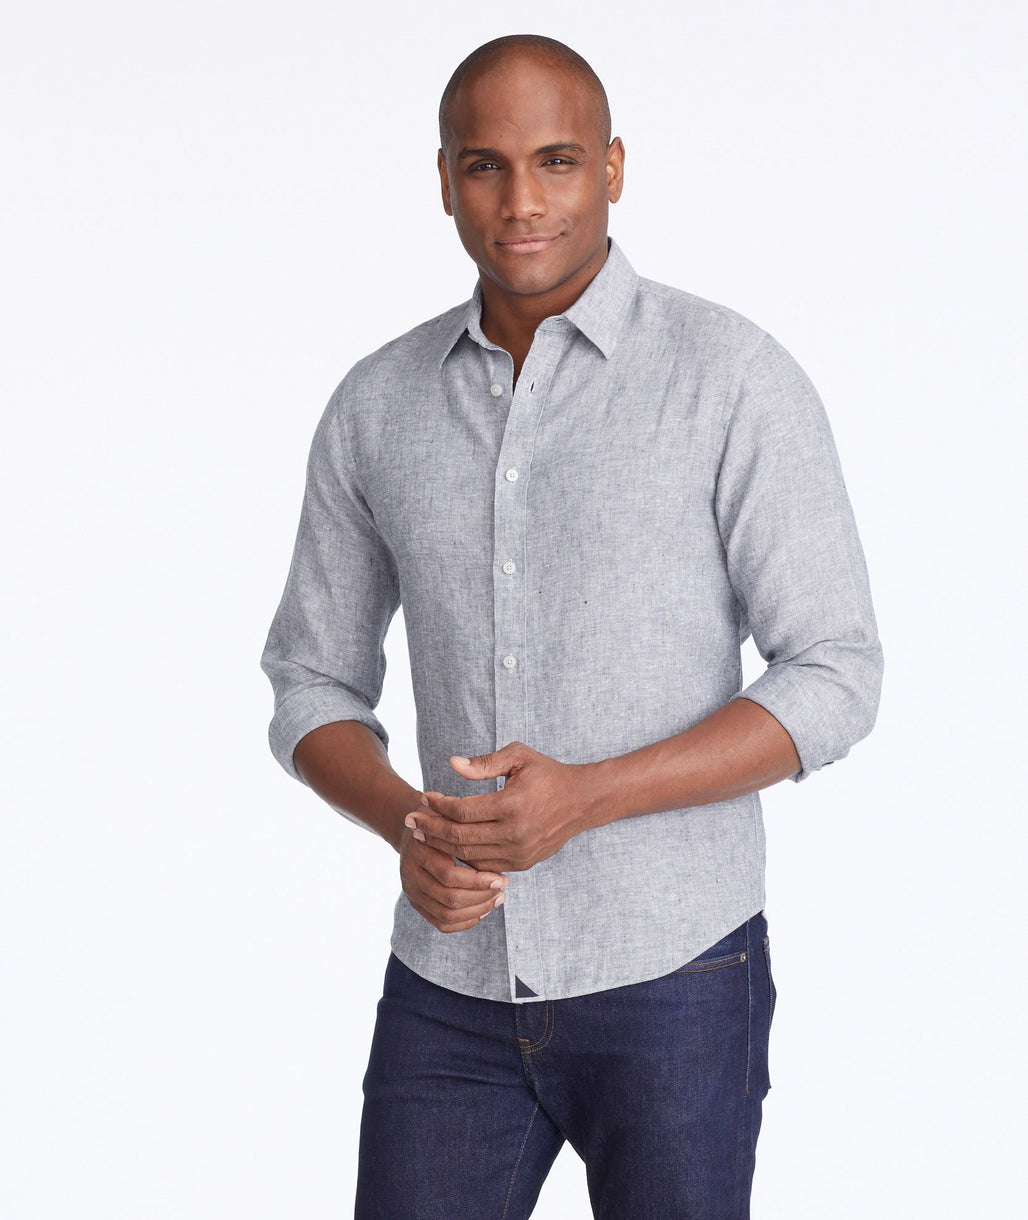 Model wearing a Grey Wrinkle-Resistant Linen Strausse Shirt